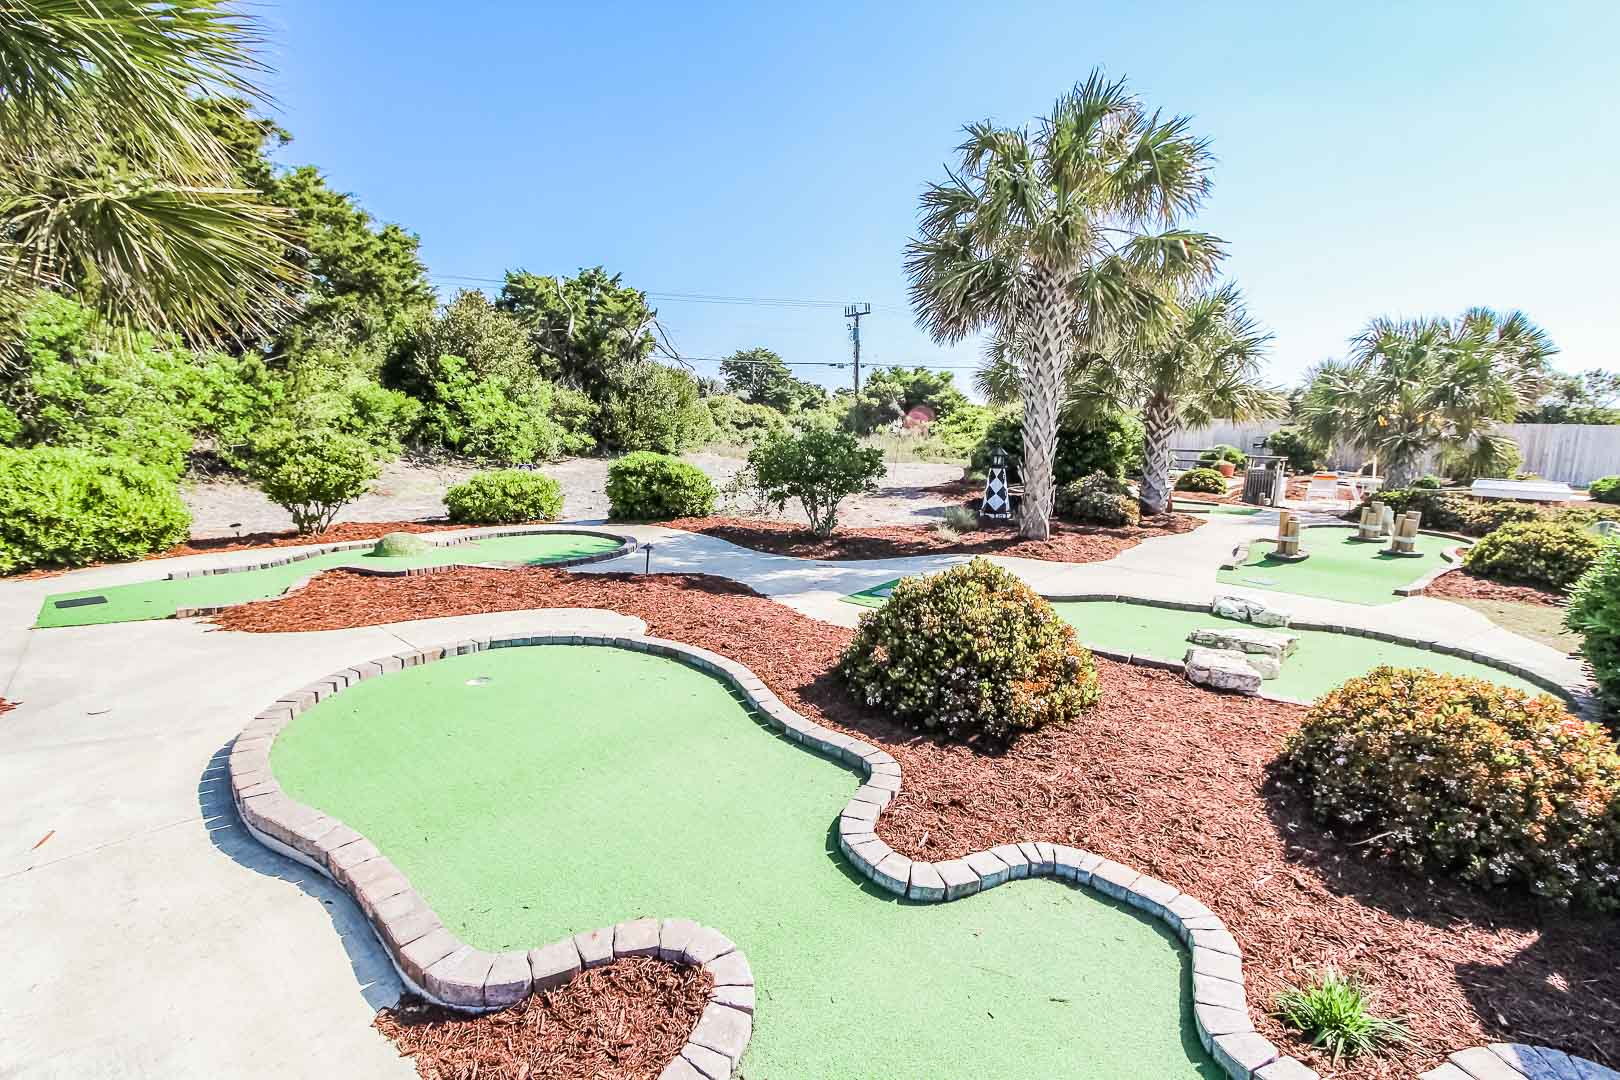 A mini-golf area for the family to enjoy at VRI's A Place at the Beach III in North Carolina